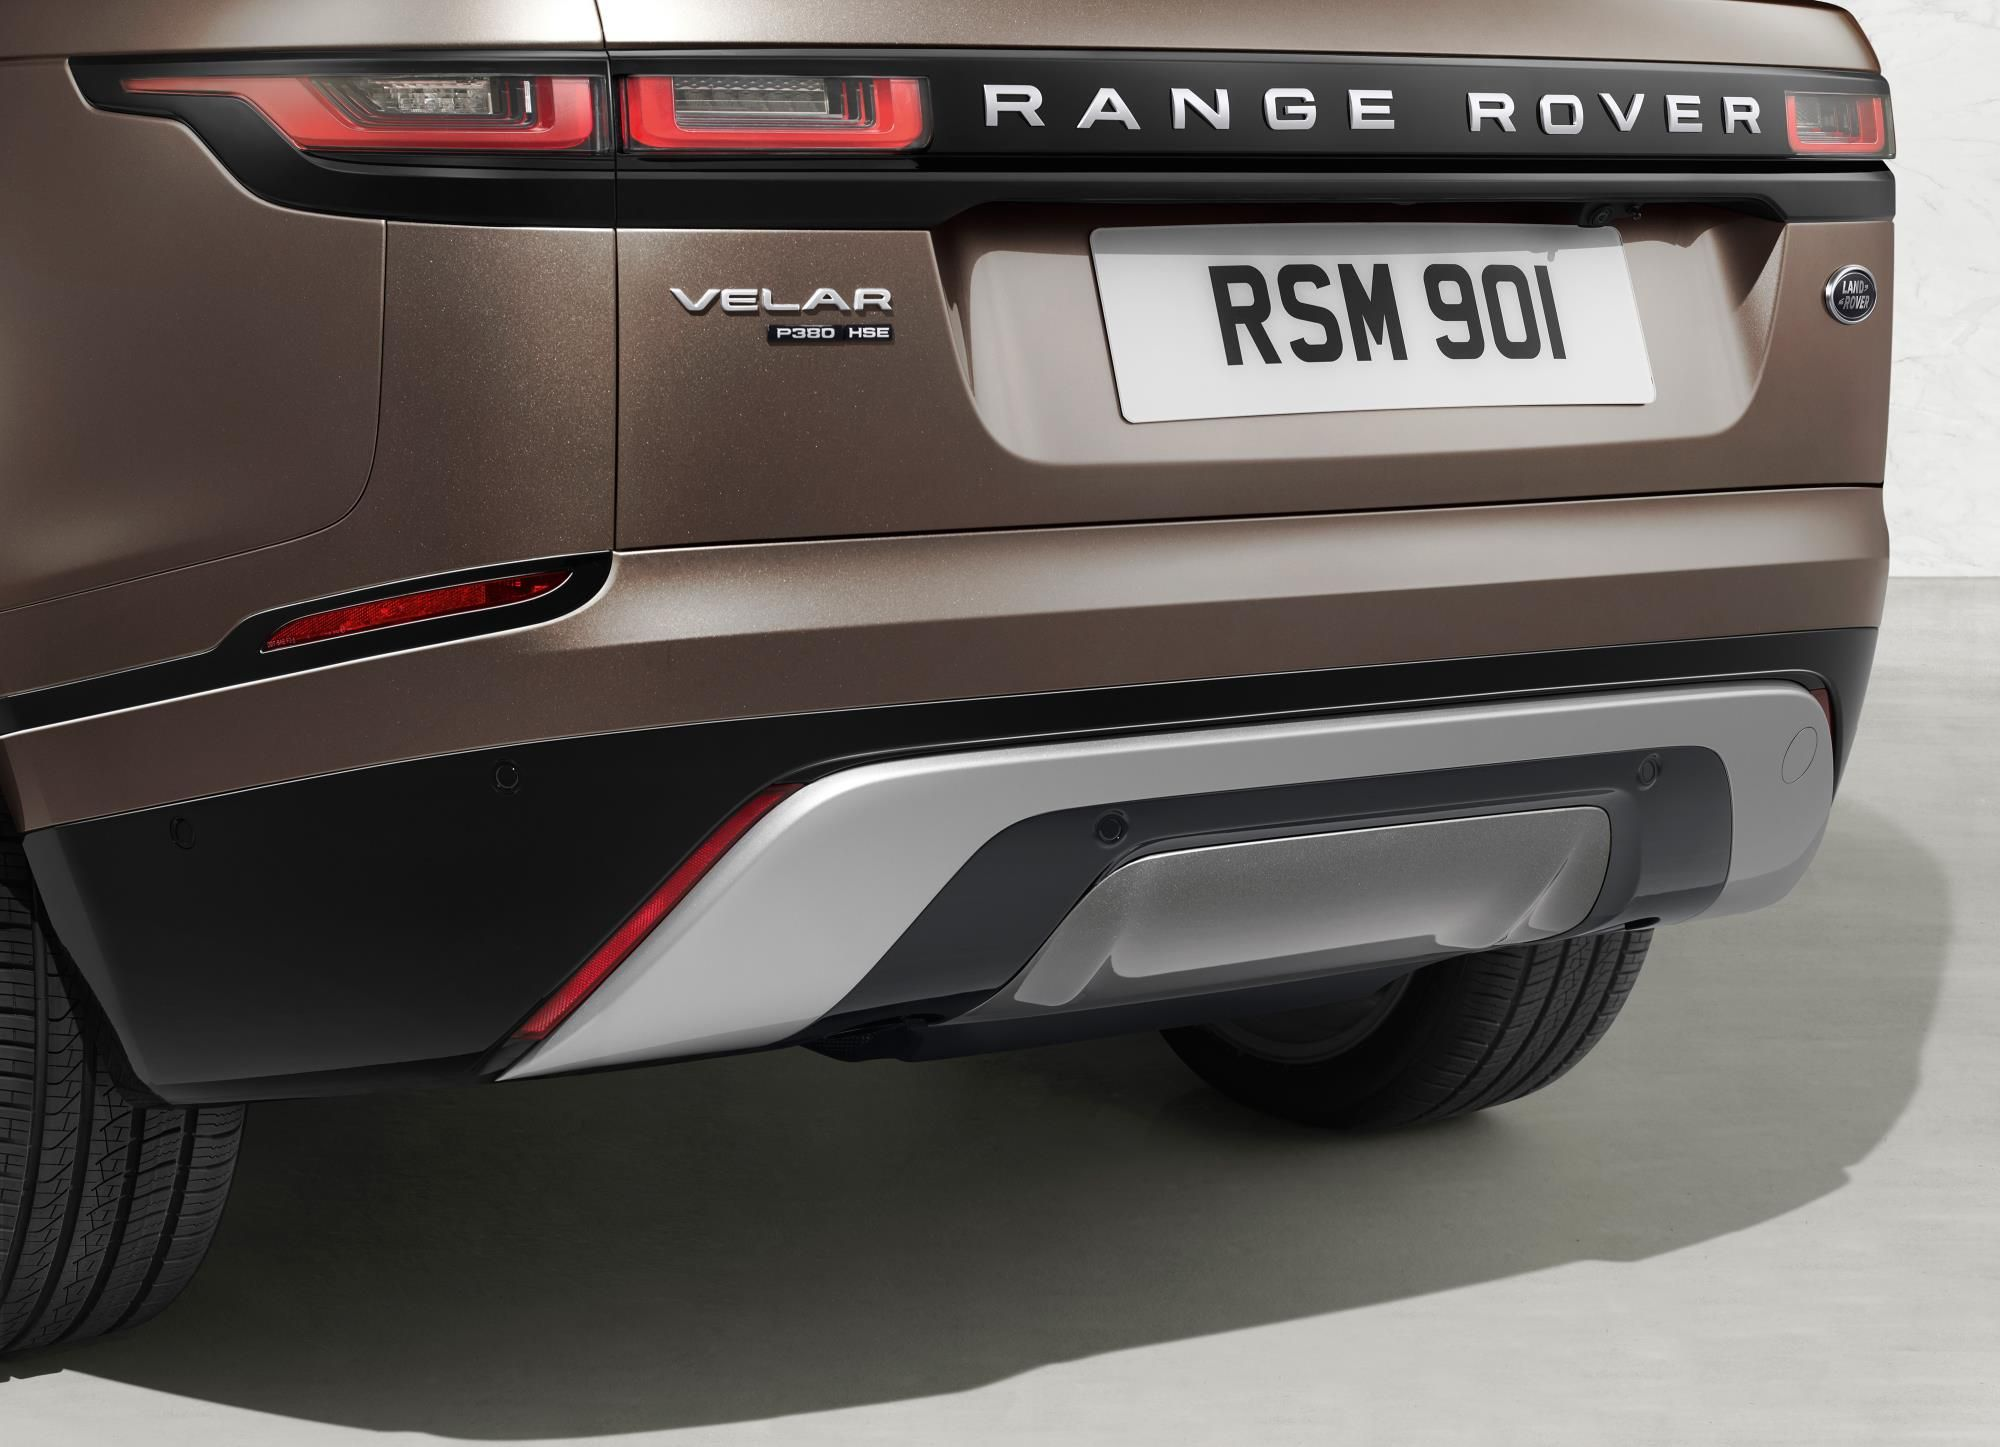 2020 Road Rover Electric Suv Could Be An Allroad Style Wagon Autoevolution Range Rover Land Rover Suv